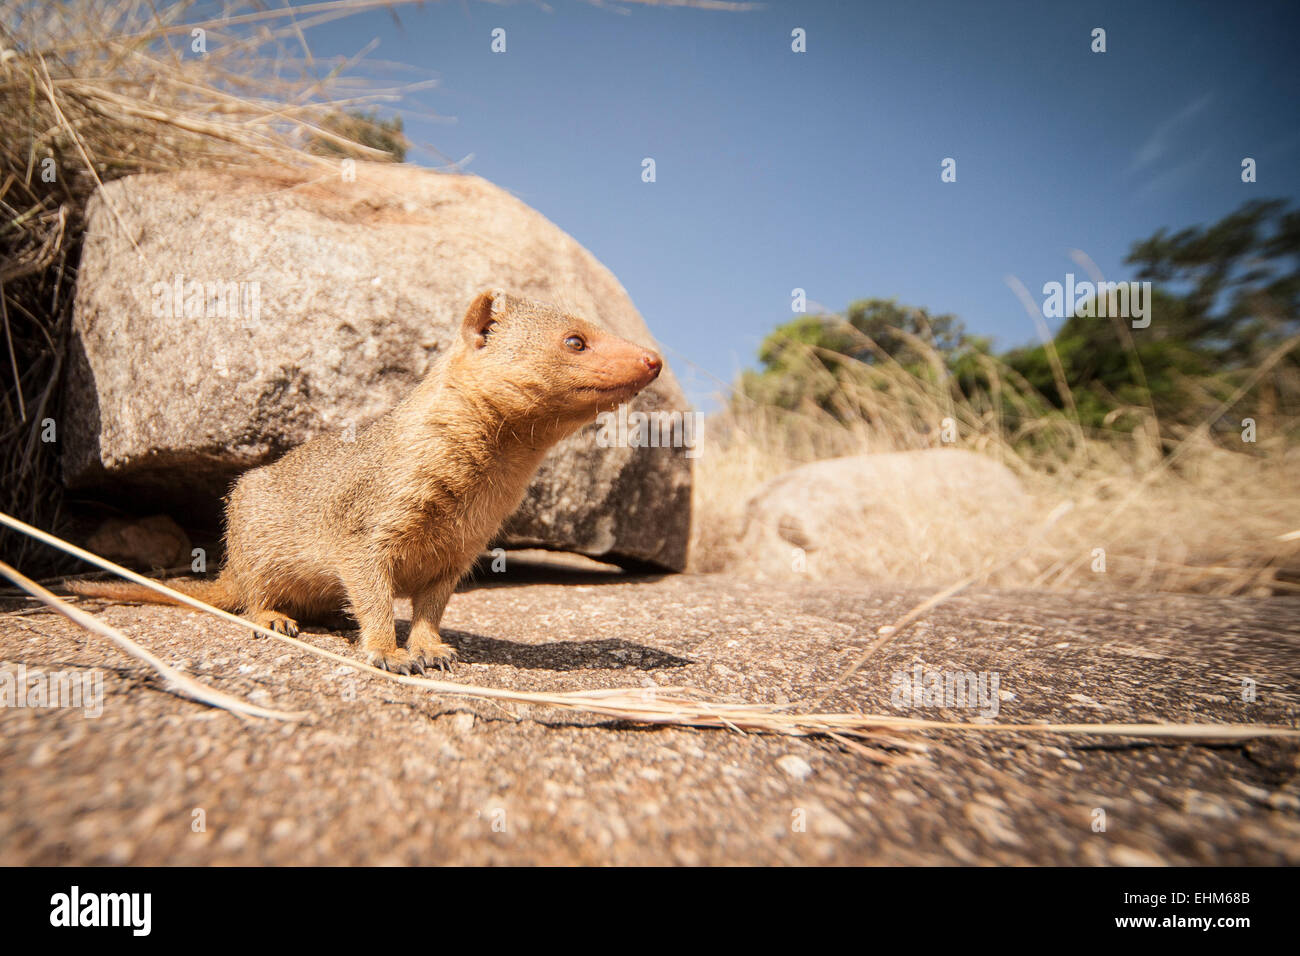 Common dwarf mongoose (Helogale parvula) scouting the surroundings. - Stock Image